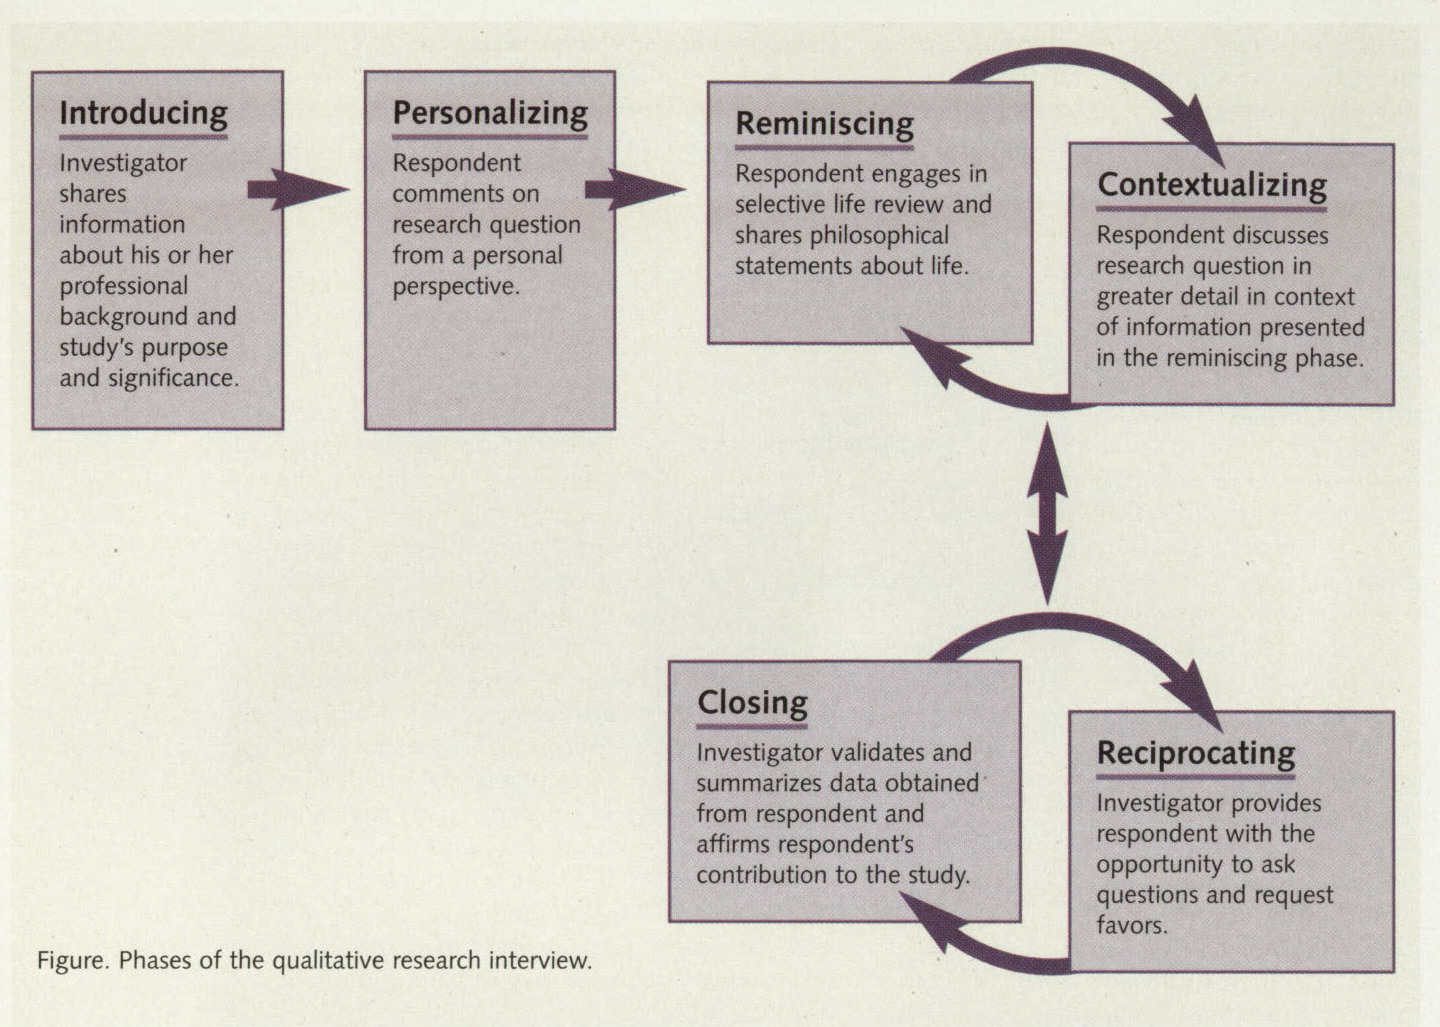 Figure. Phases of the qualitative research interview.